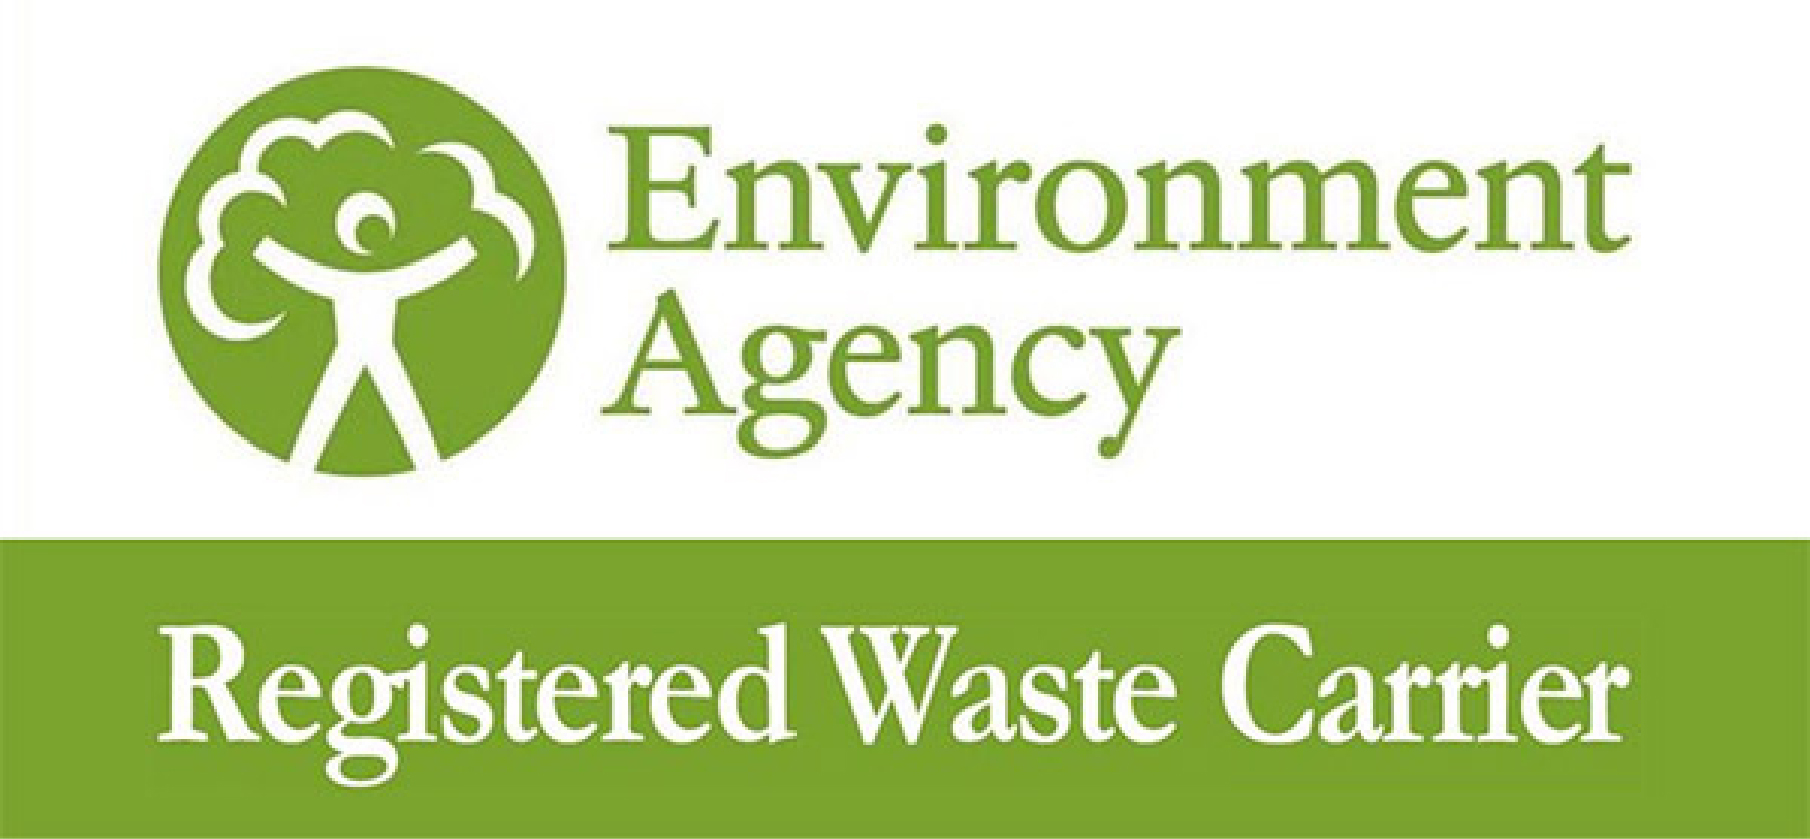 environment agency for Rubbish Removal London